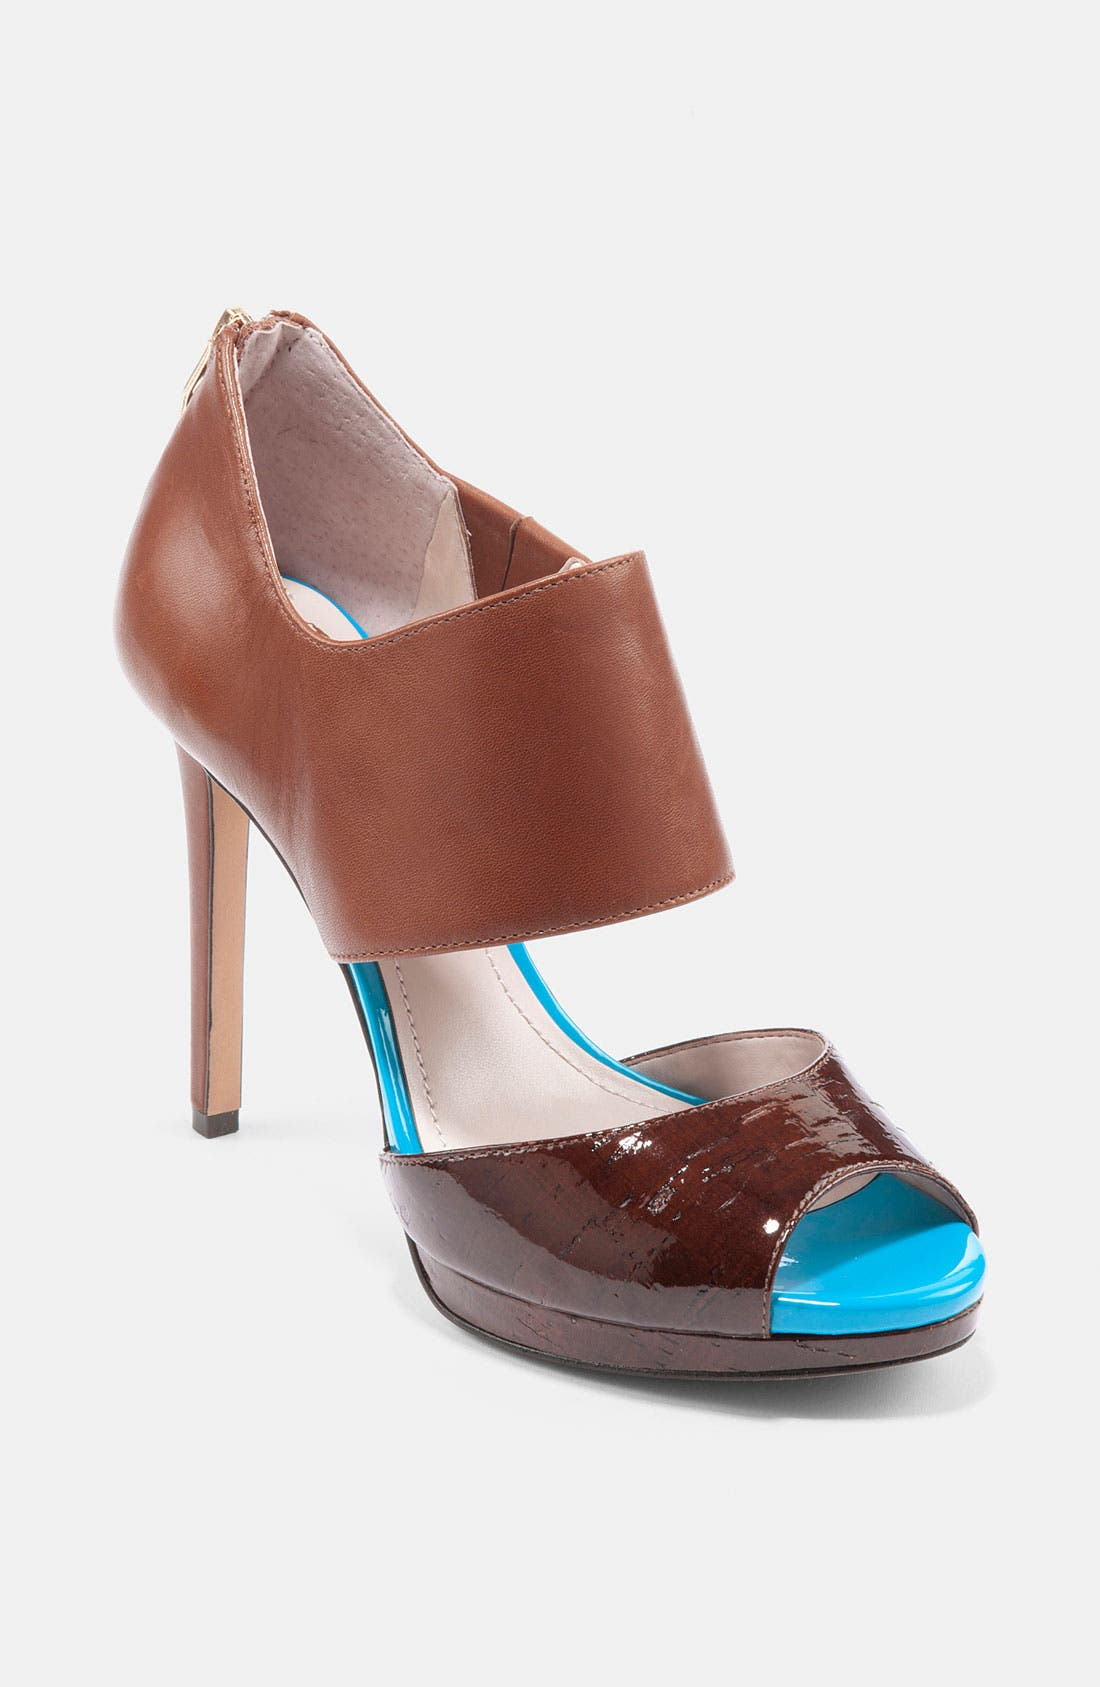 Main Image - Vince Camuto 'Canaday' Sandal